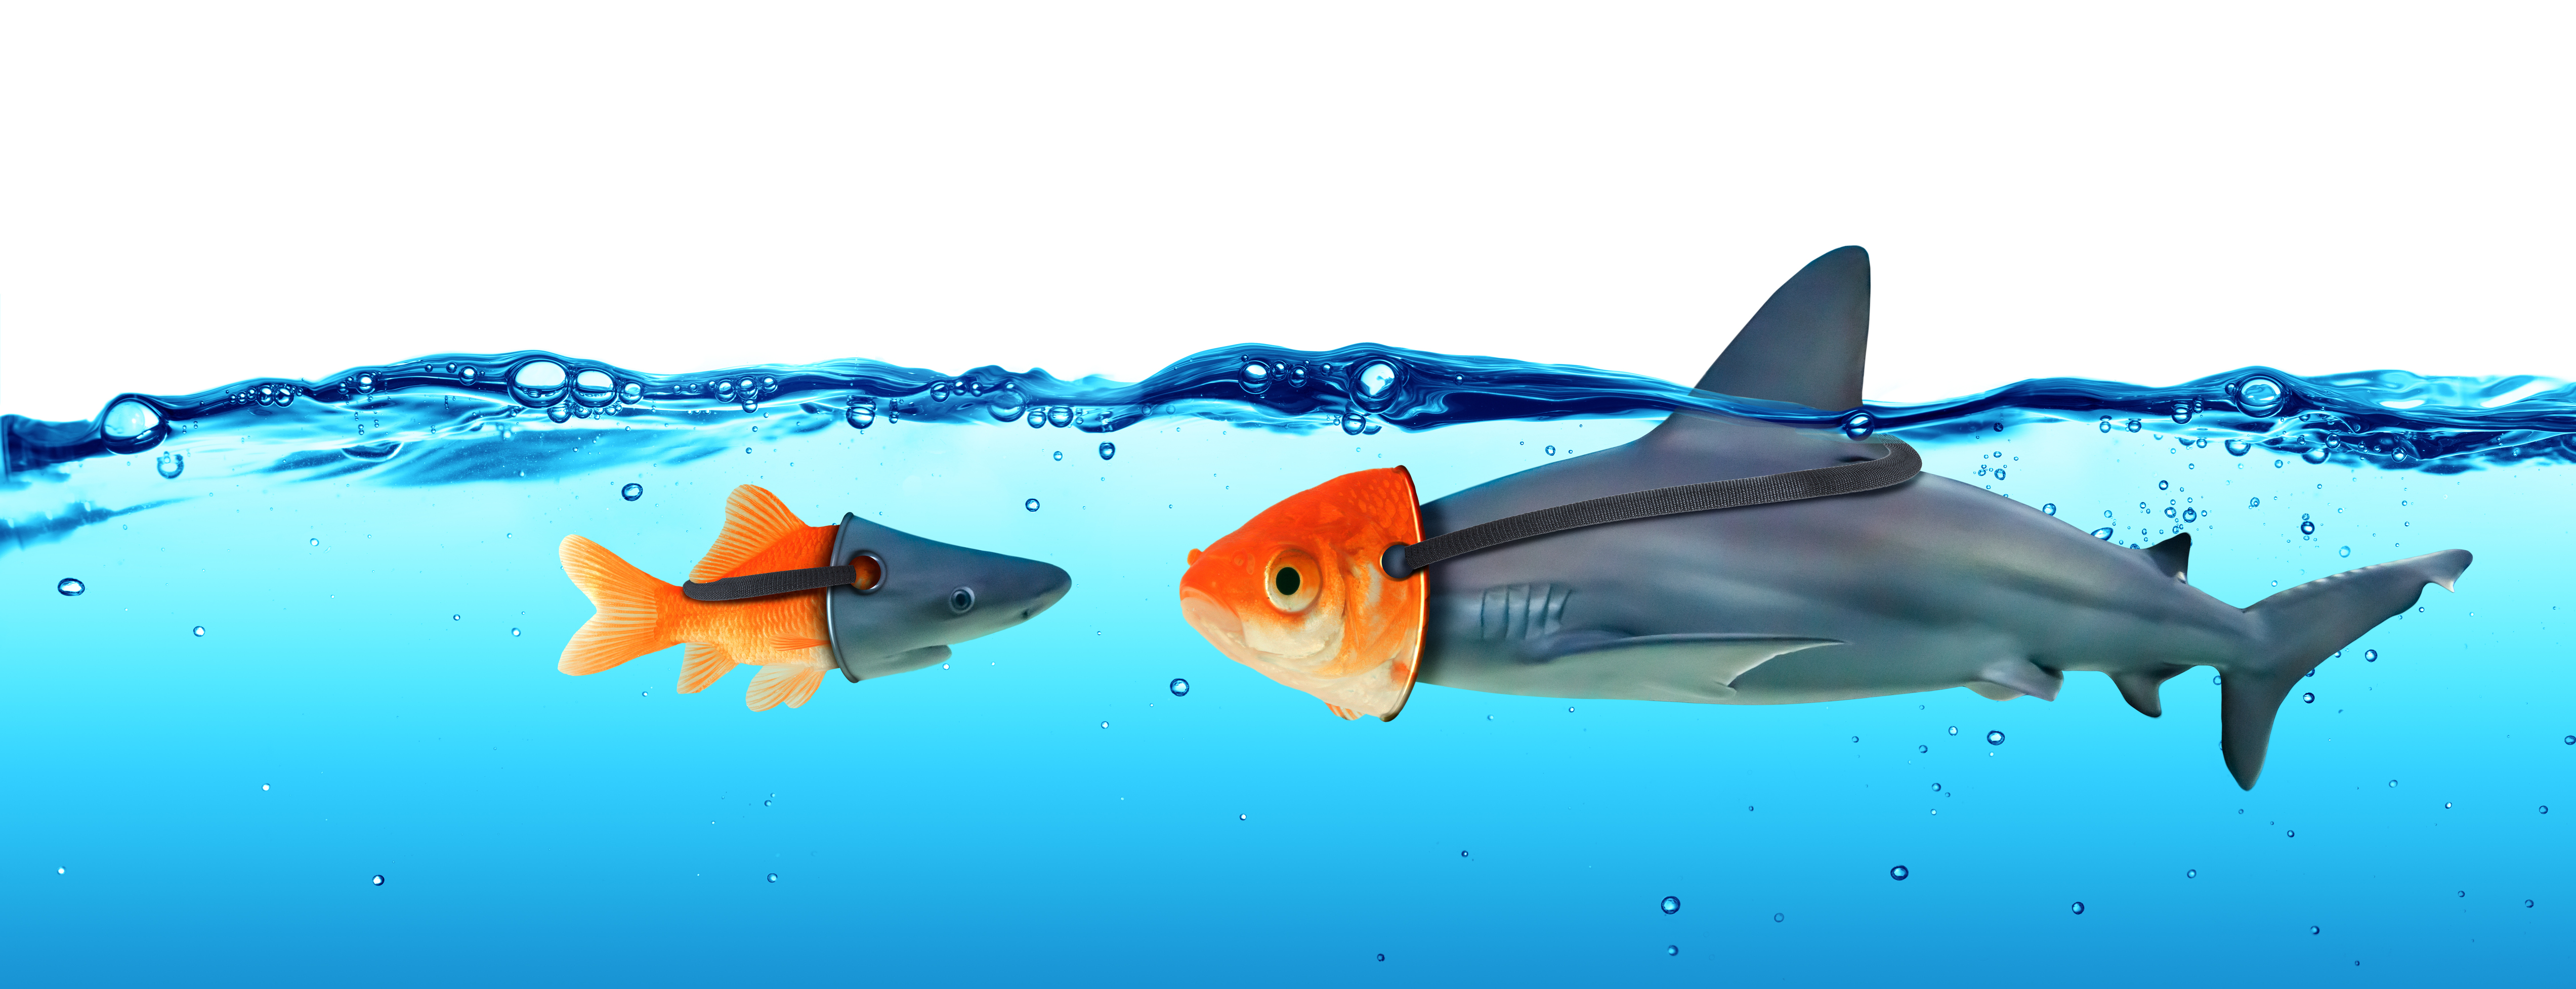 Deception Concept – Disguise Between Shark And Goldfish